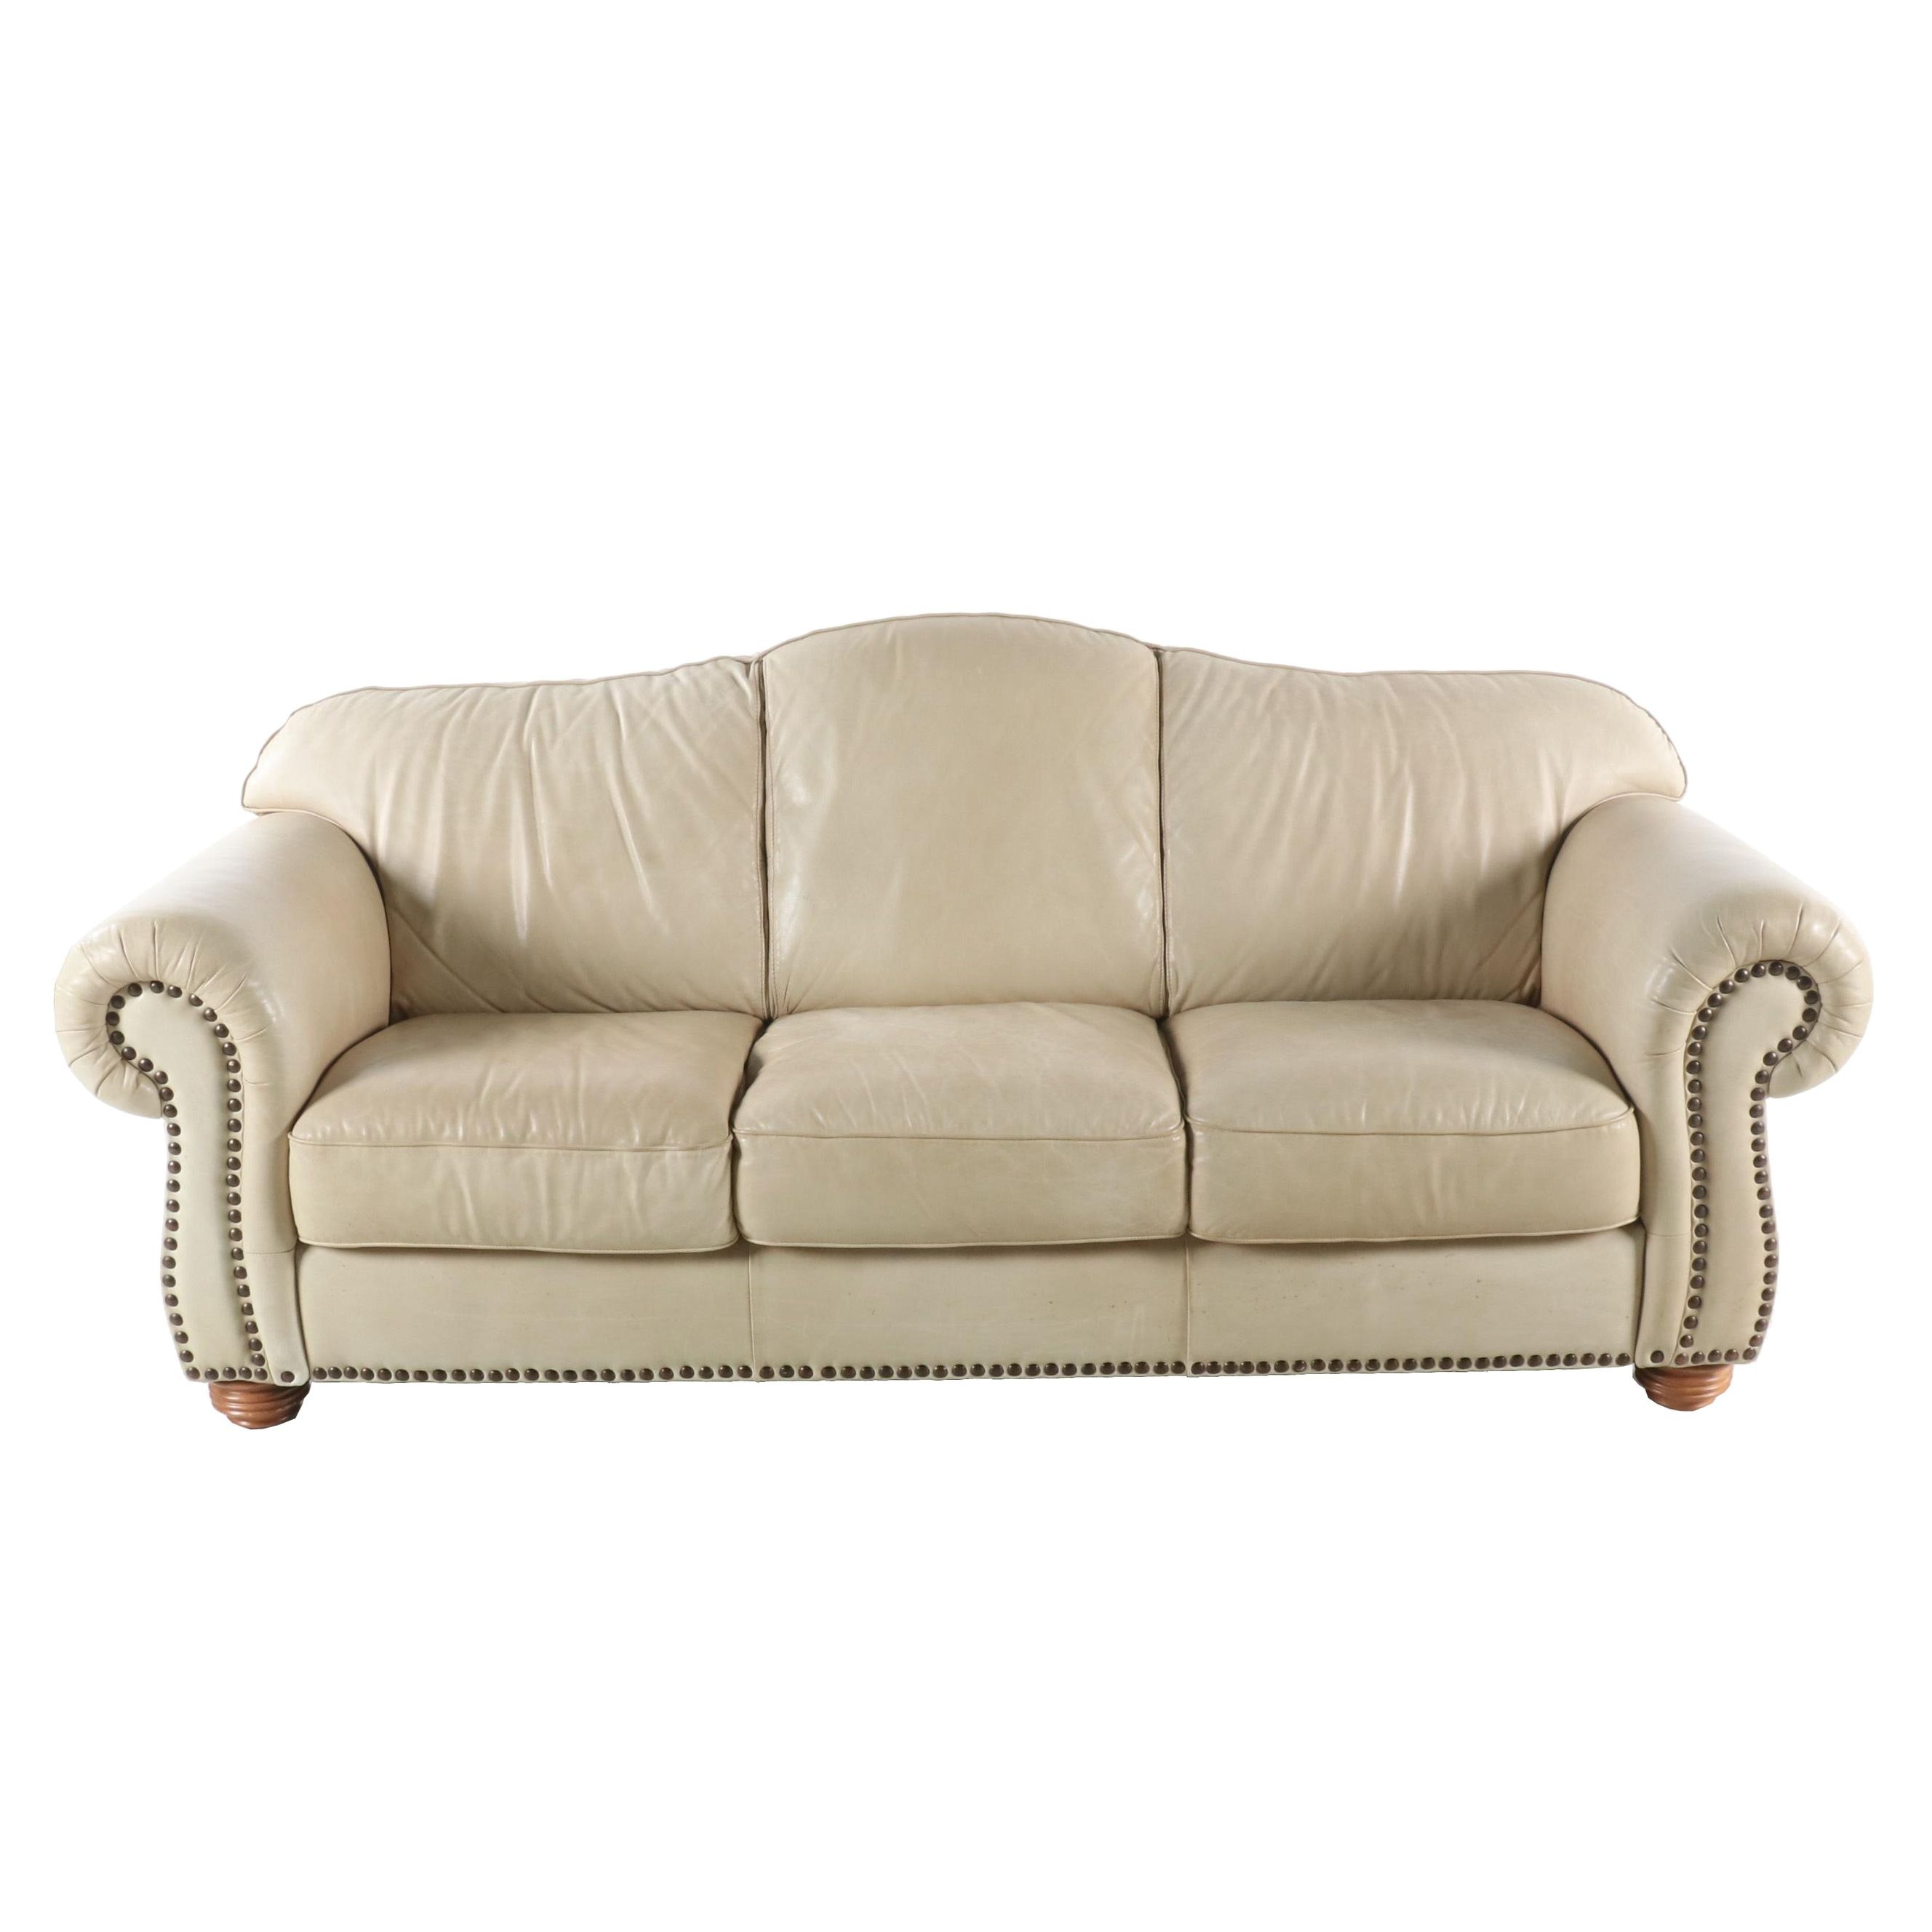 Contemporary Leather Camelback Sofa with Nailhead Trim